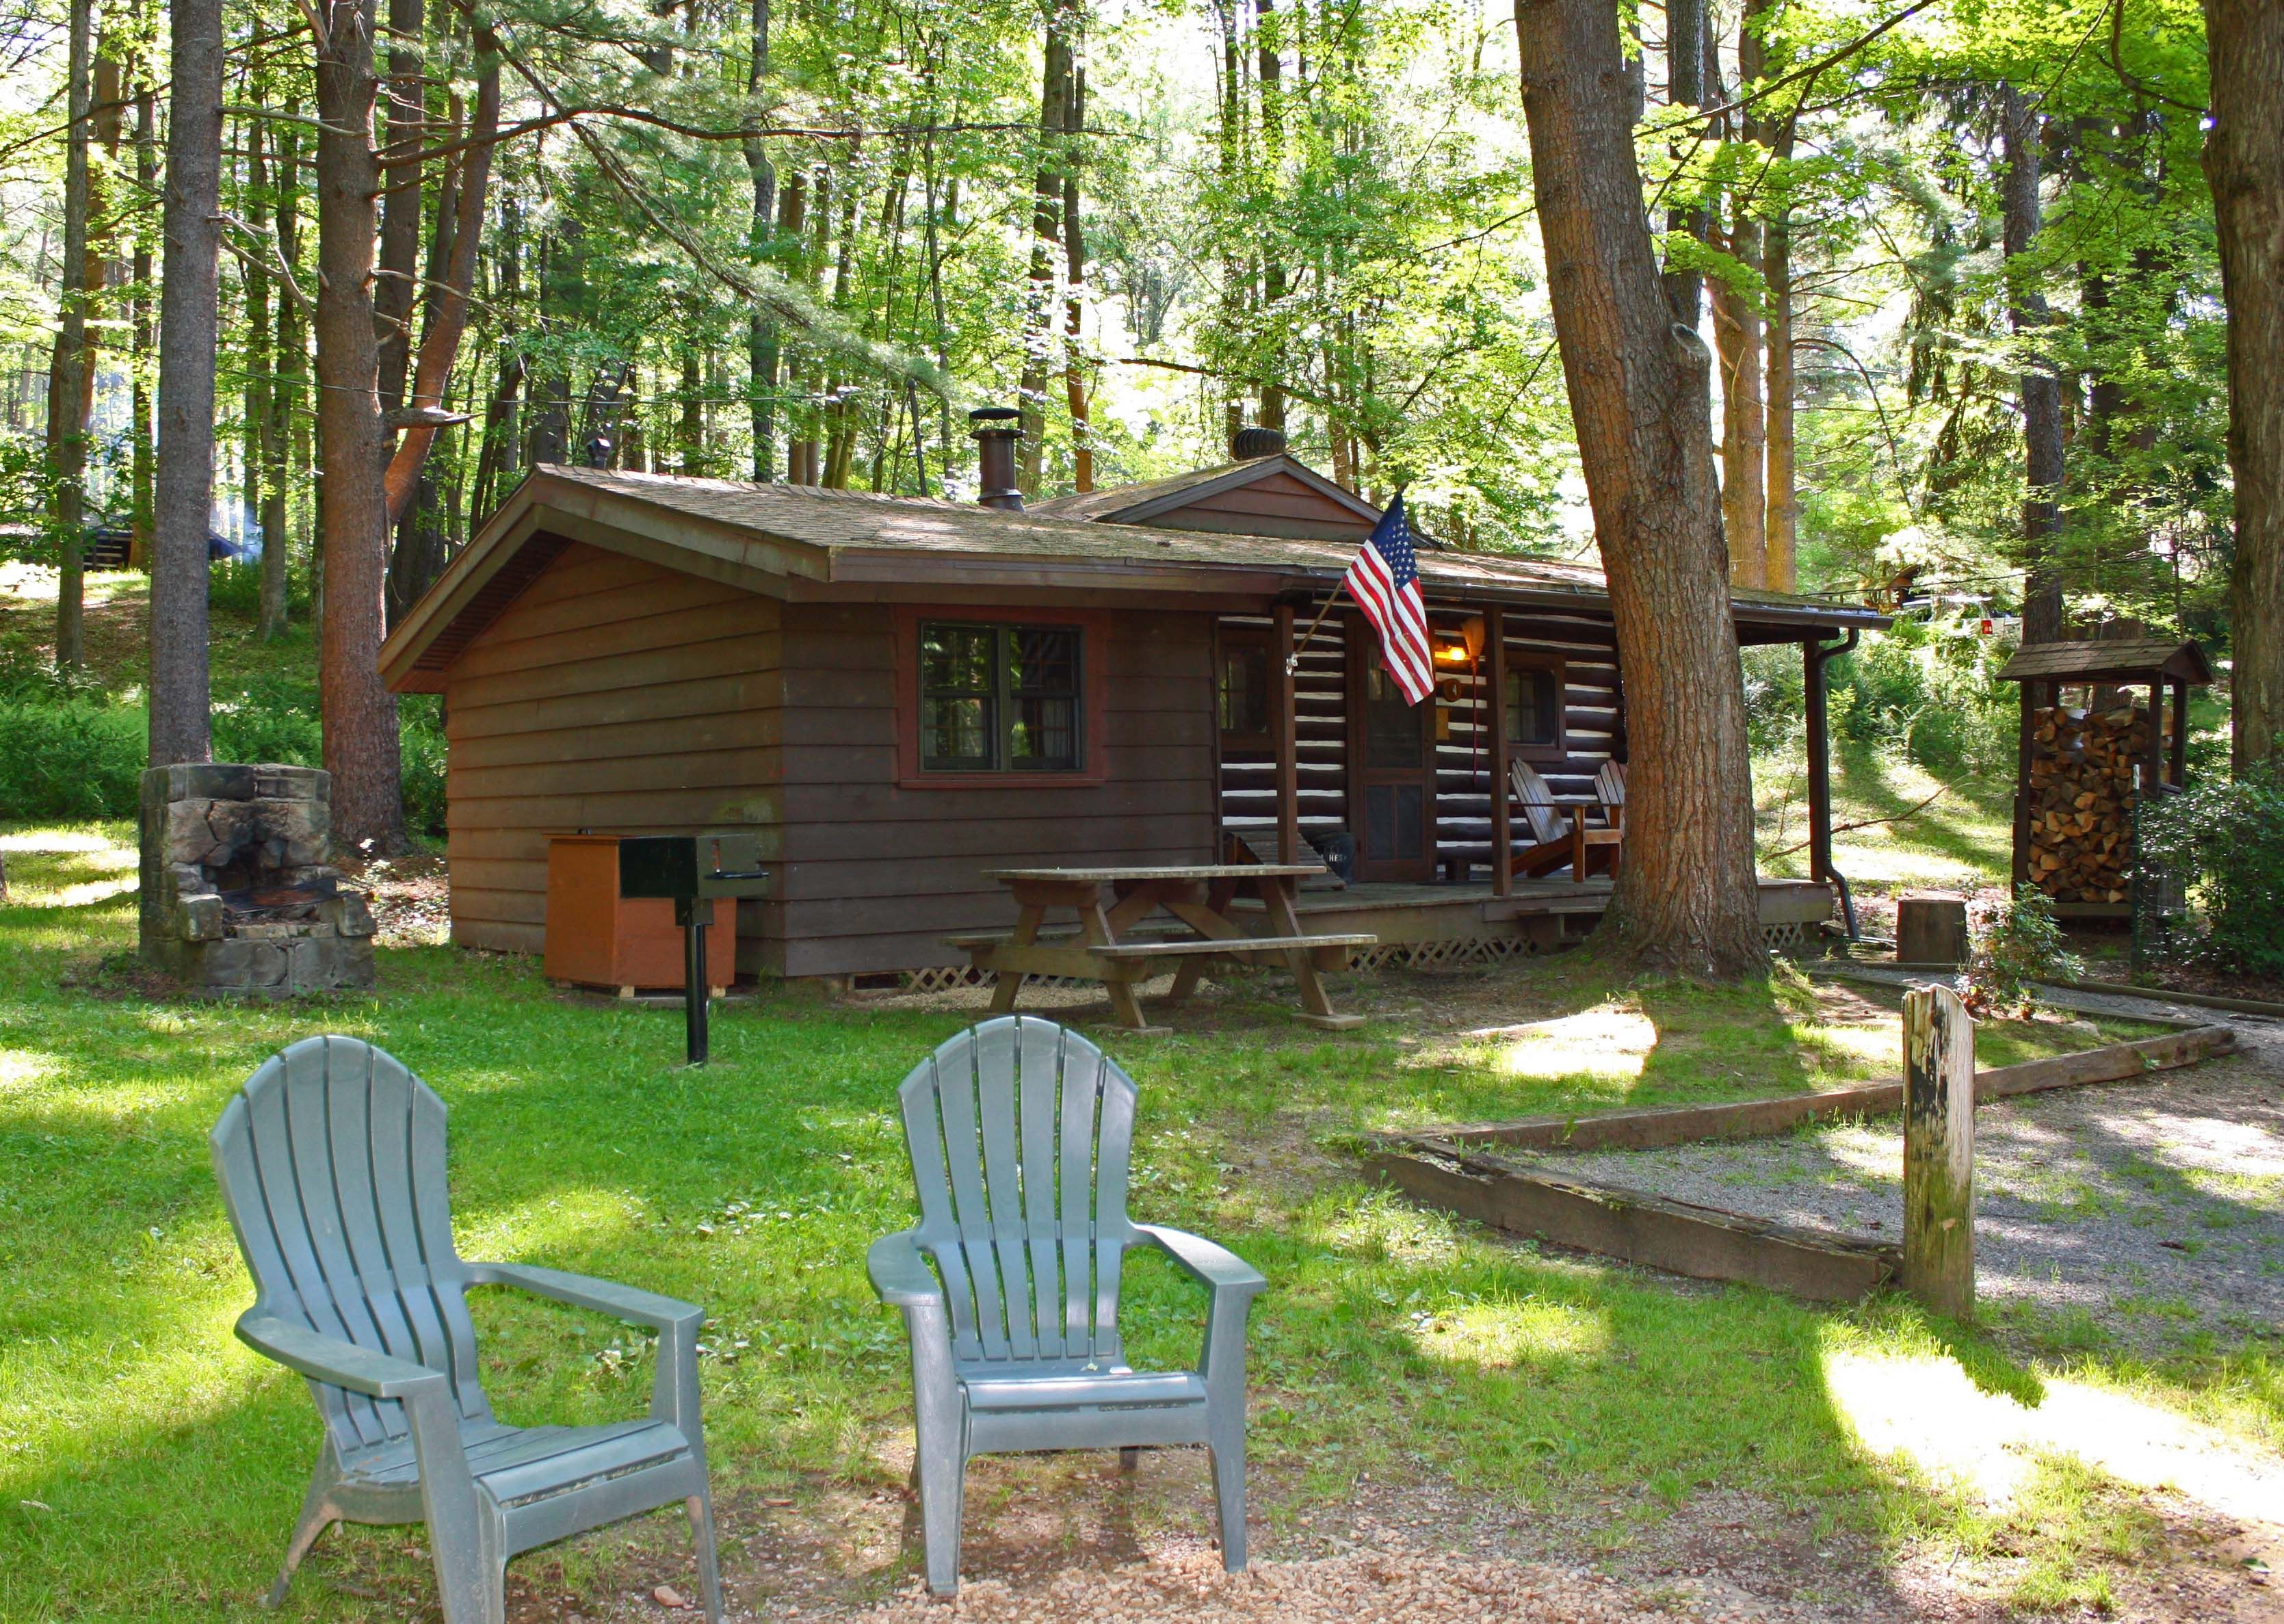 Available The Weekend Of April 6 8 2018 This Log Knotty Pine Cabin Features A Cozy Stone Wood Burning Fireplace Sleeper Cabin Hot Tub Forest Cabin Cabin